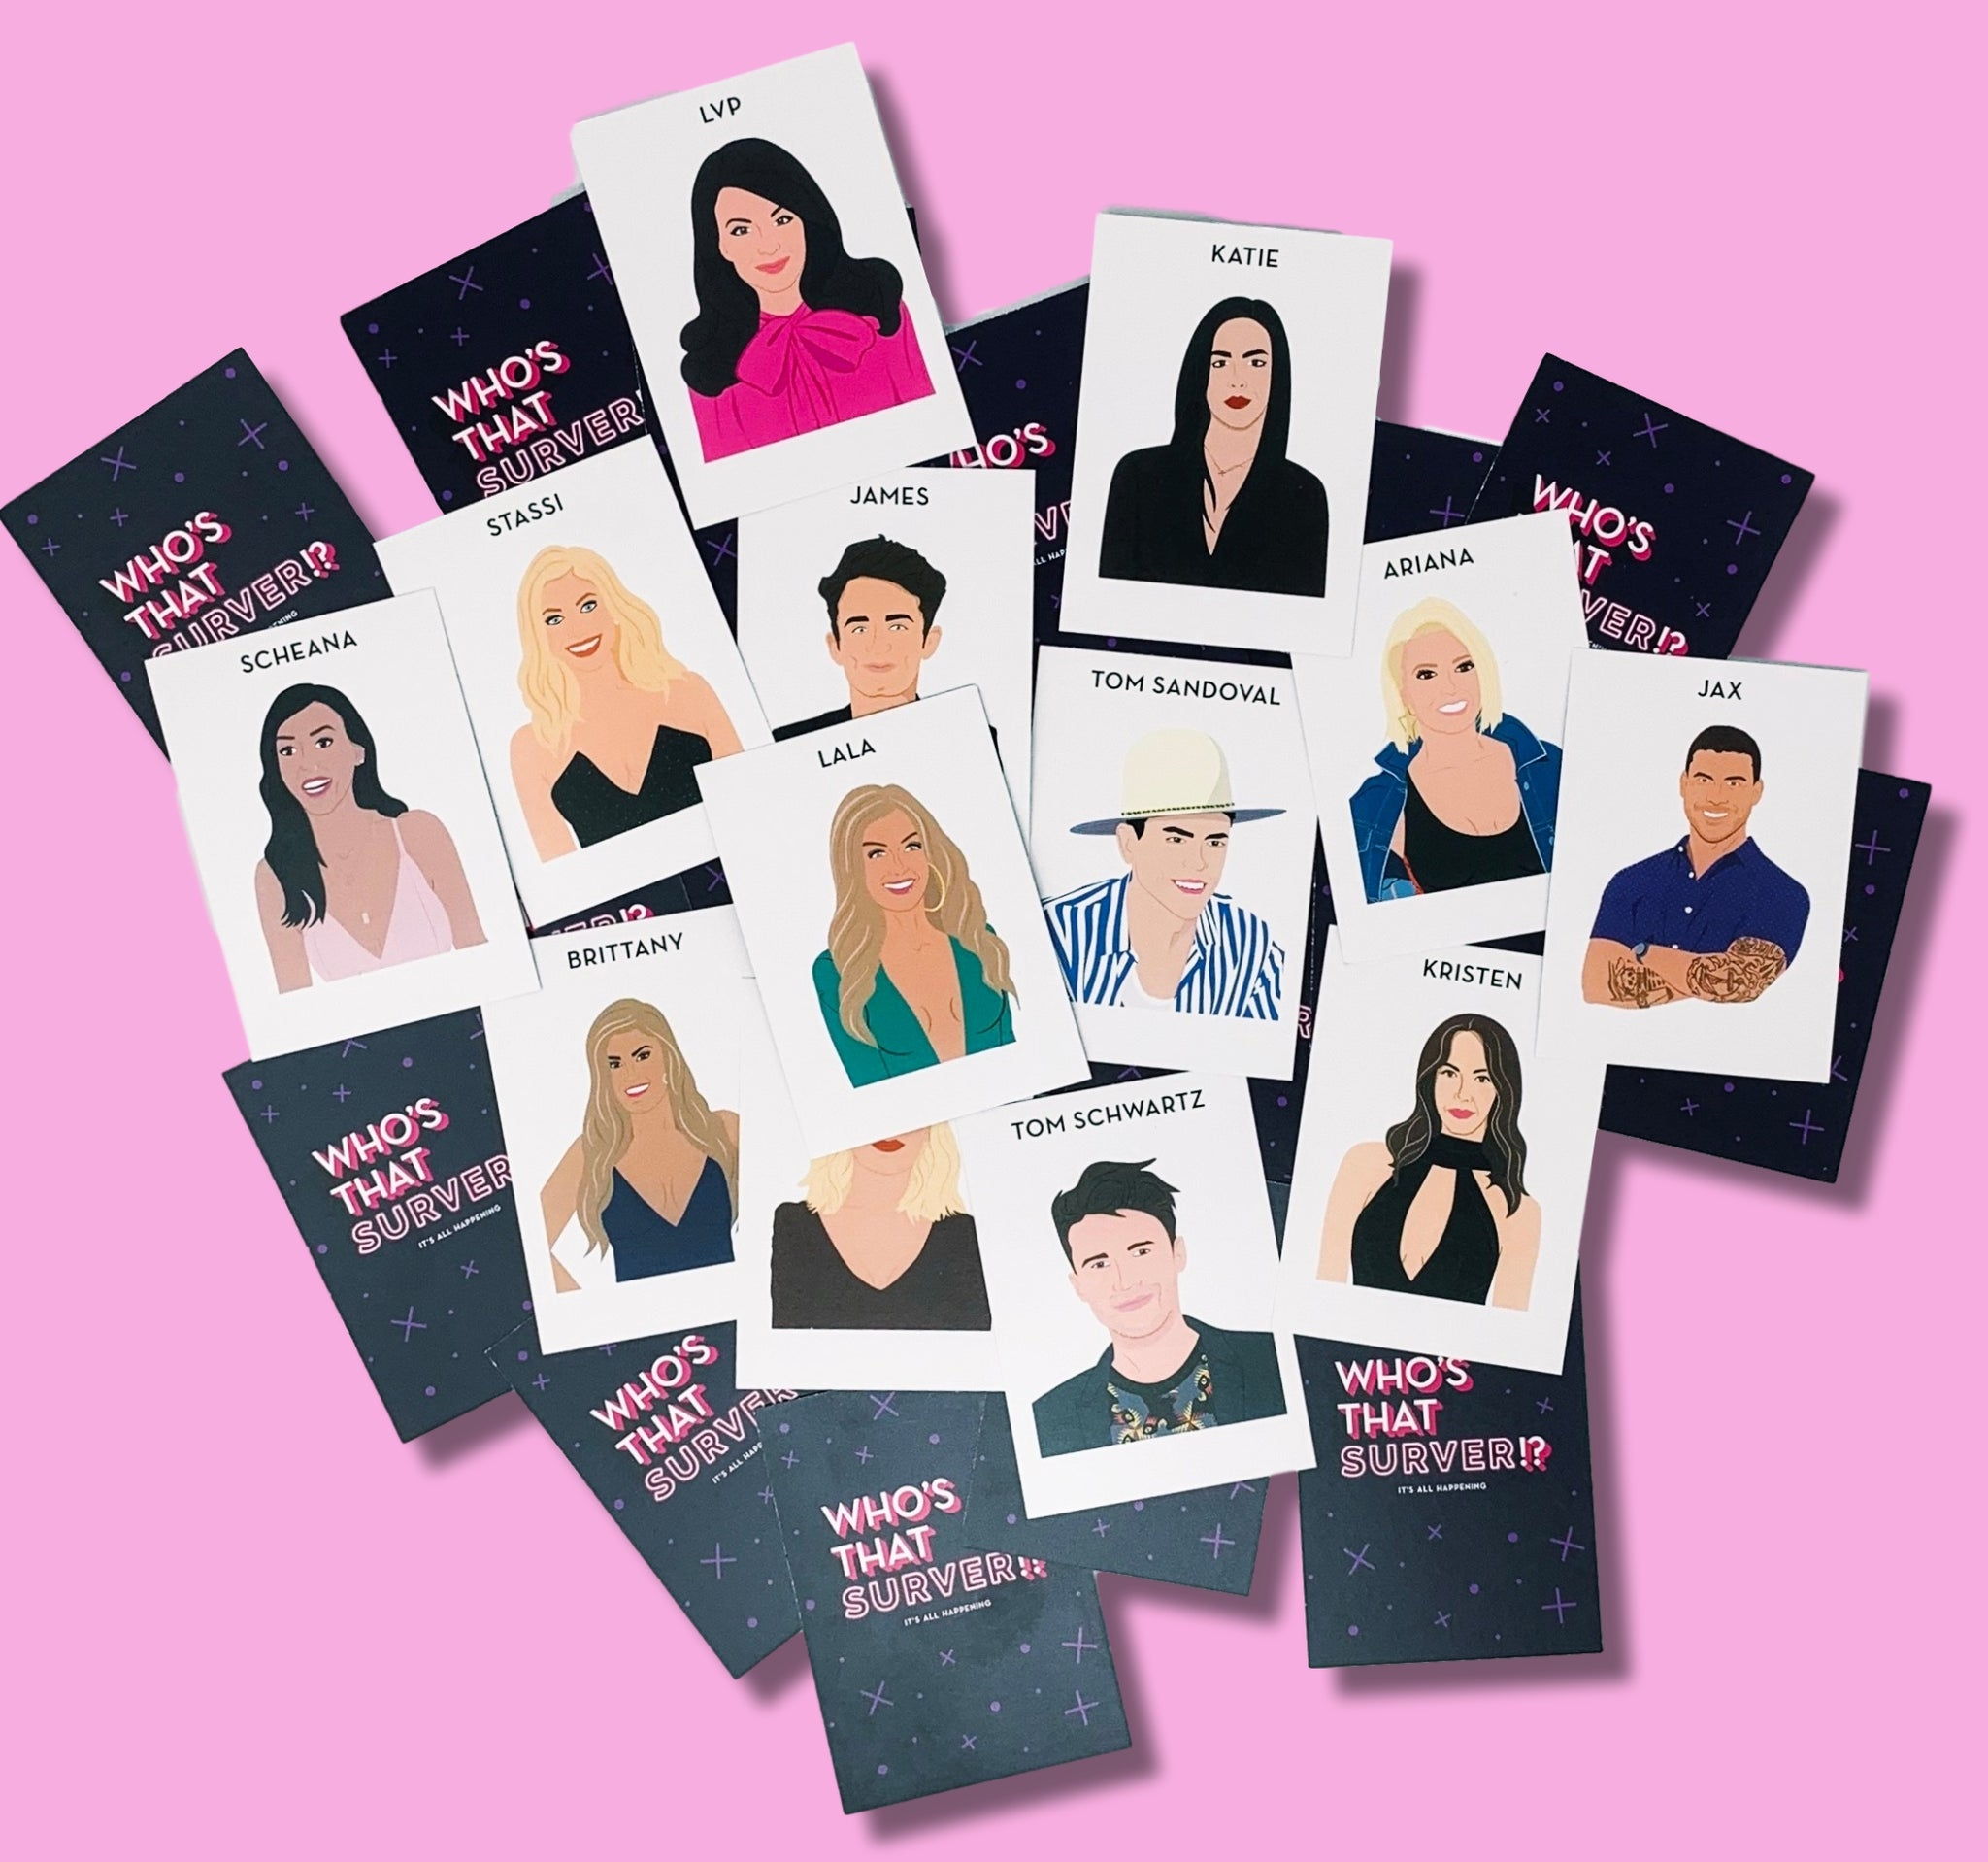 Vanderpump rules party game illustrations of cast stassi, lvp, tom sandoval, jax, scheana, katie, lala, brittany, kristen doute